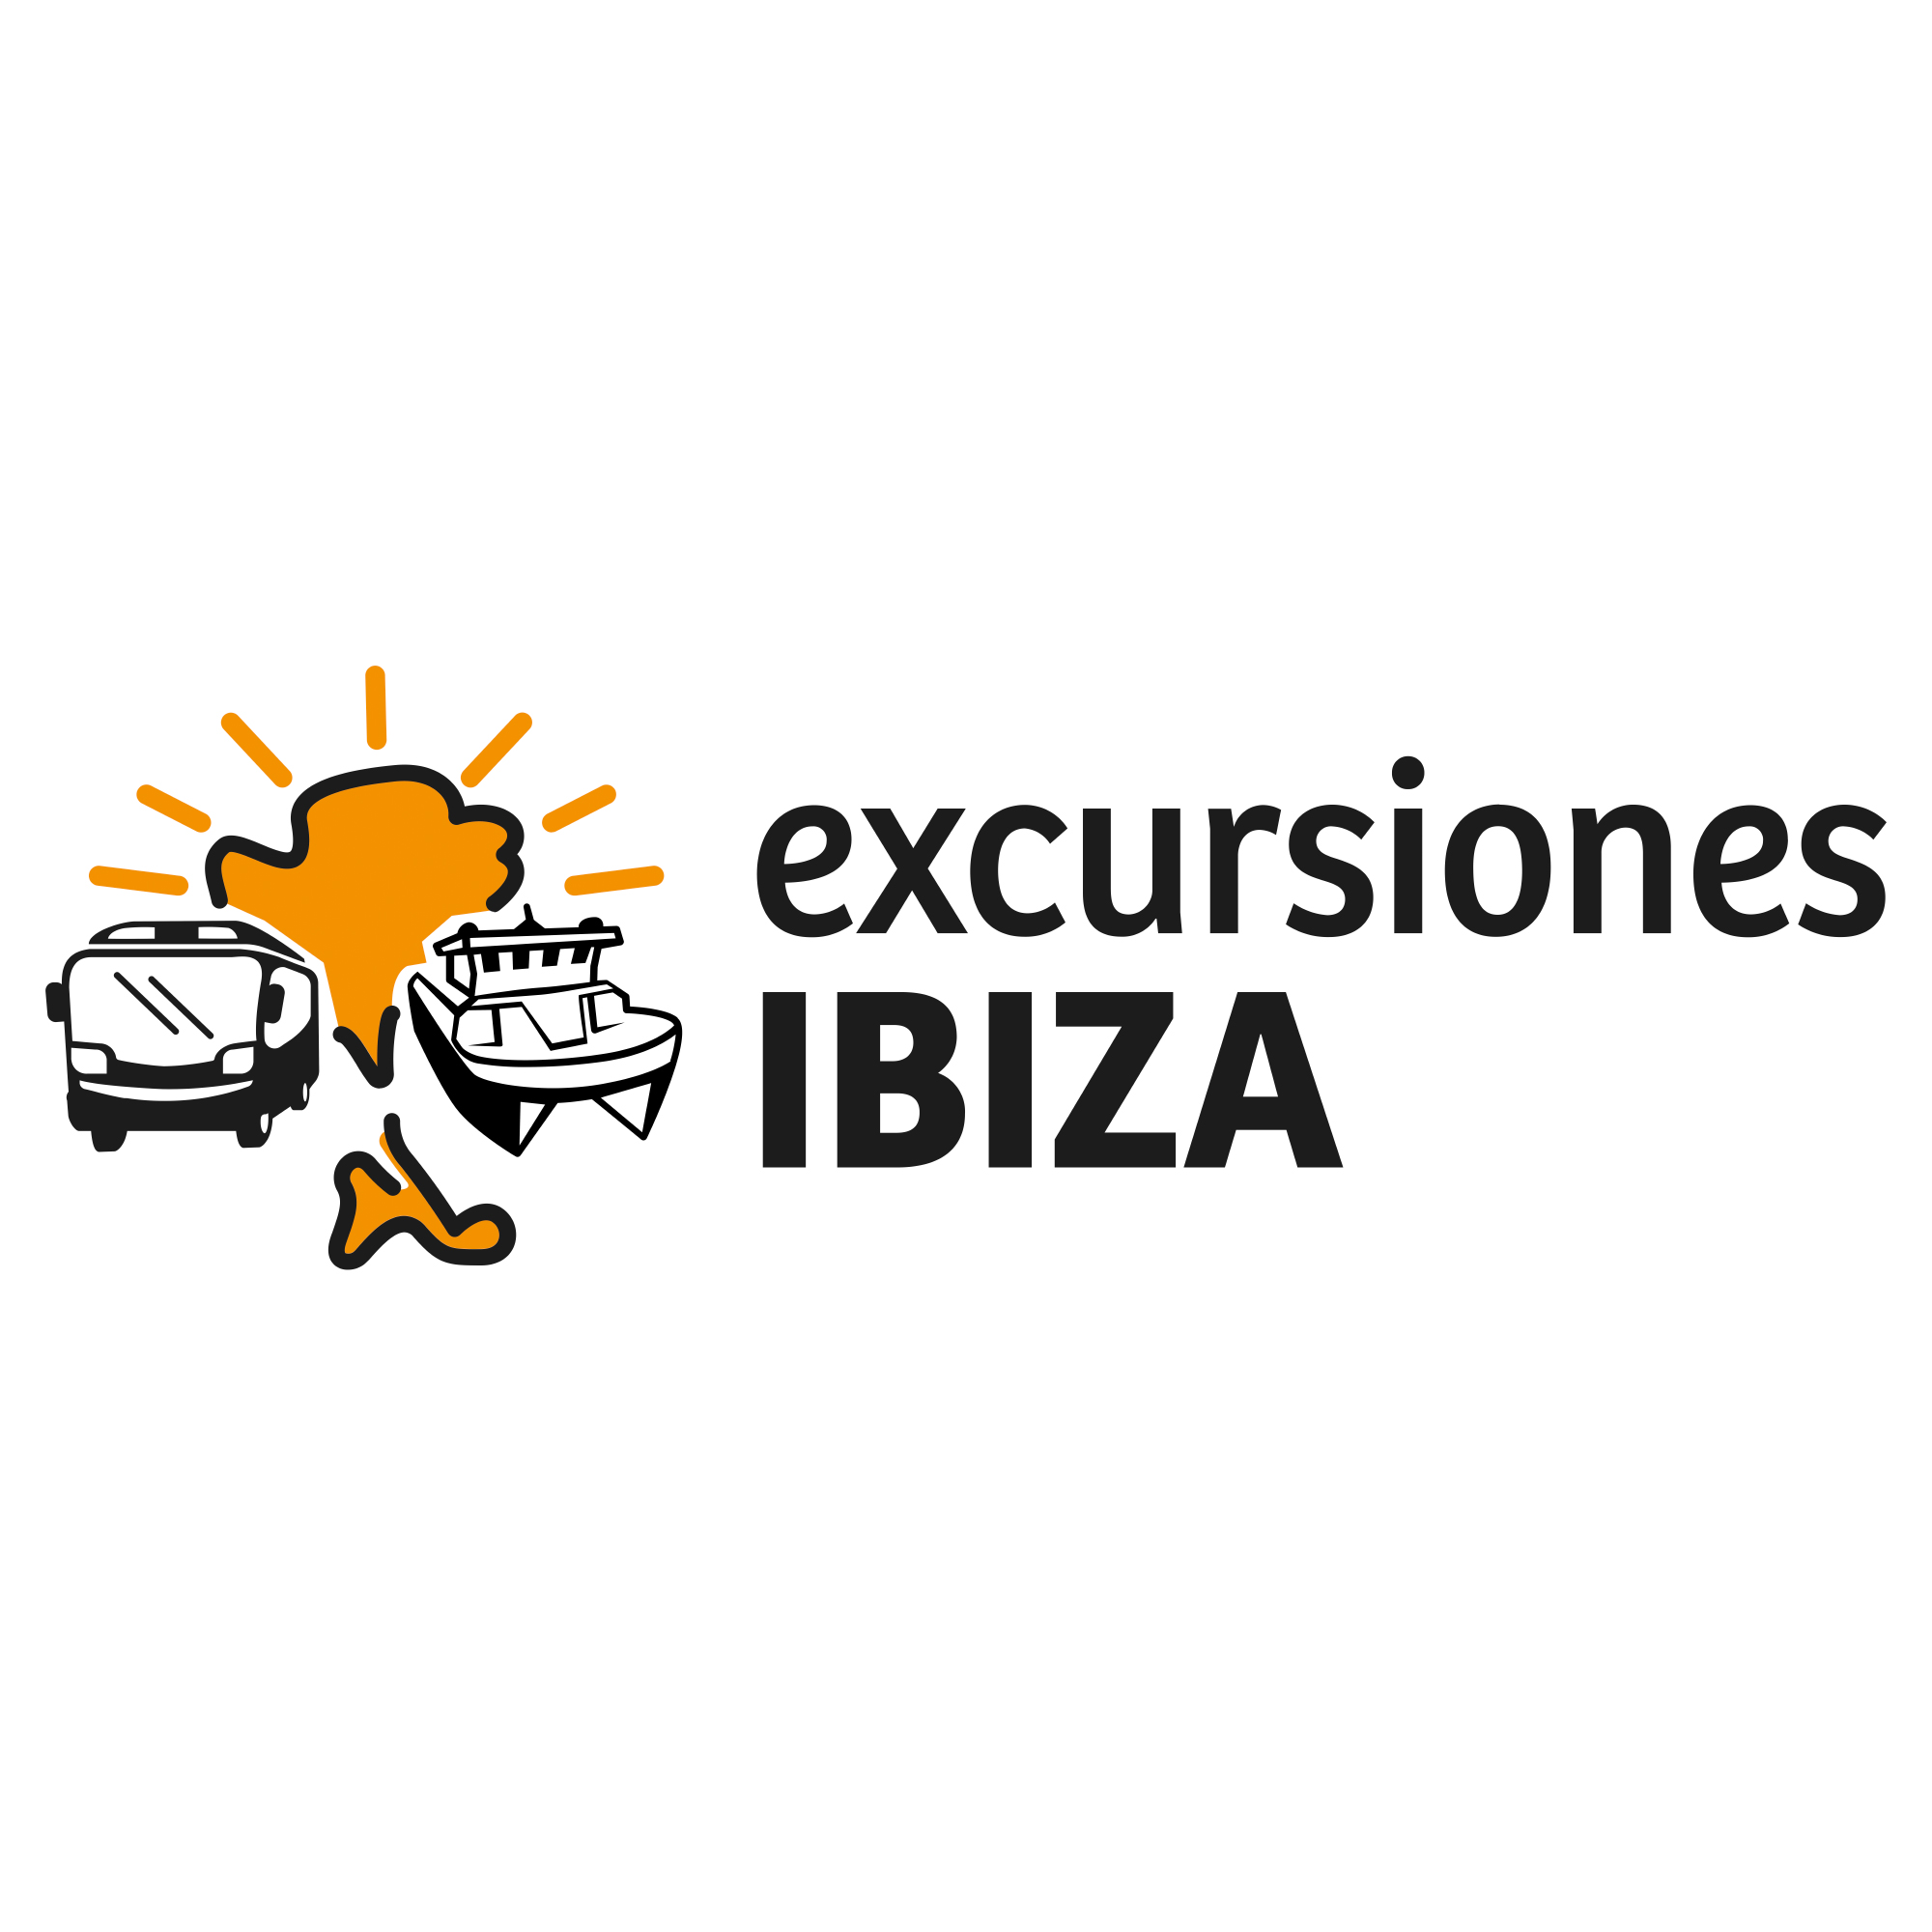 Excursiones Ibiza